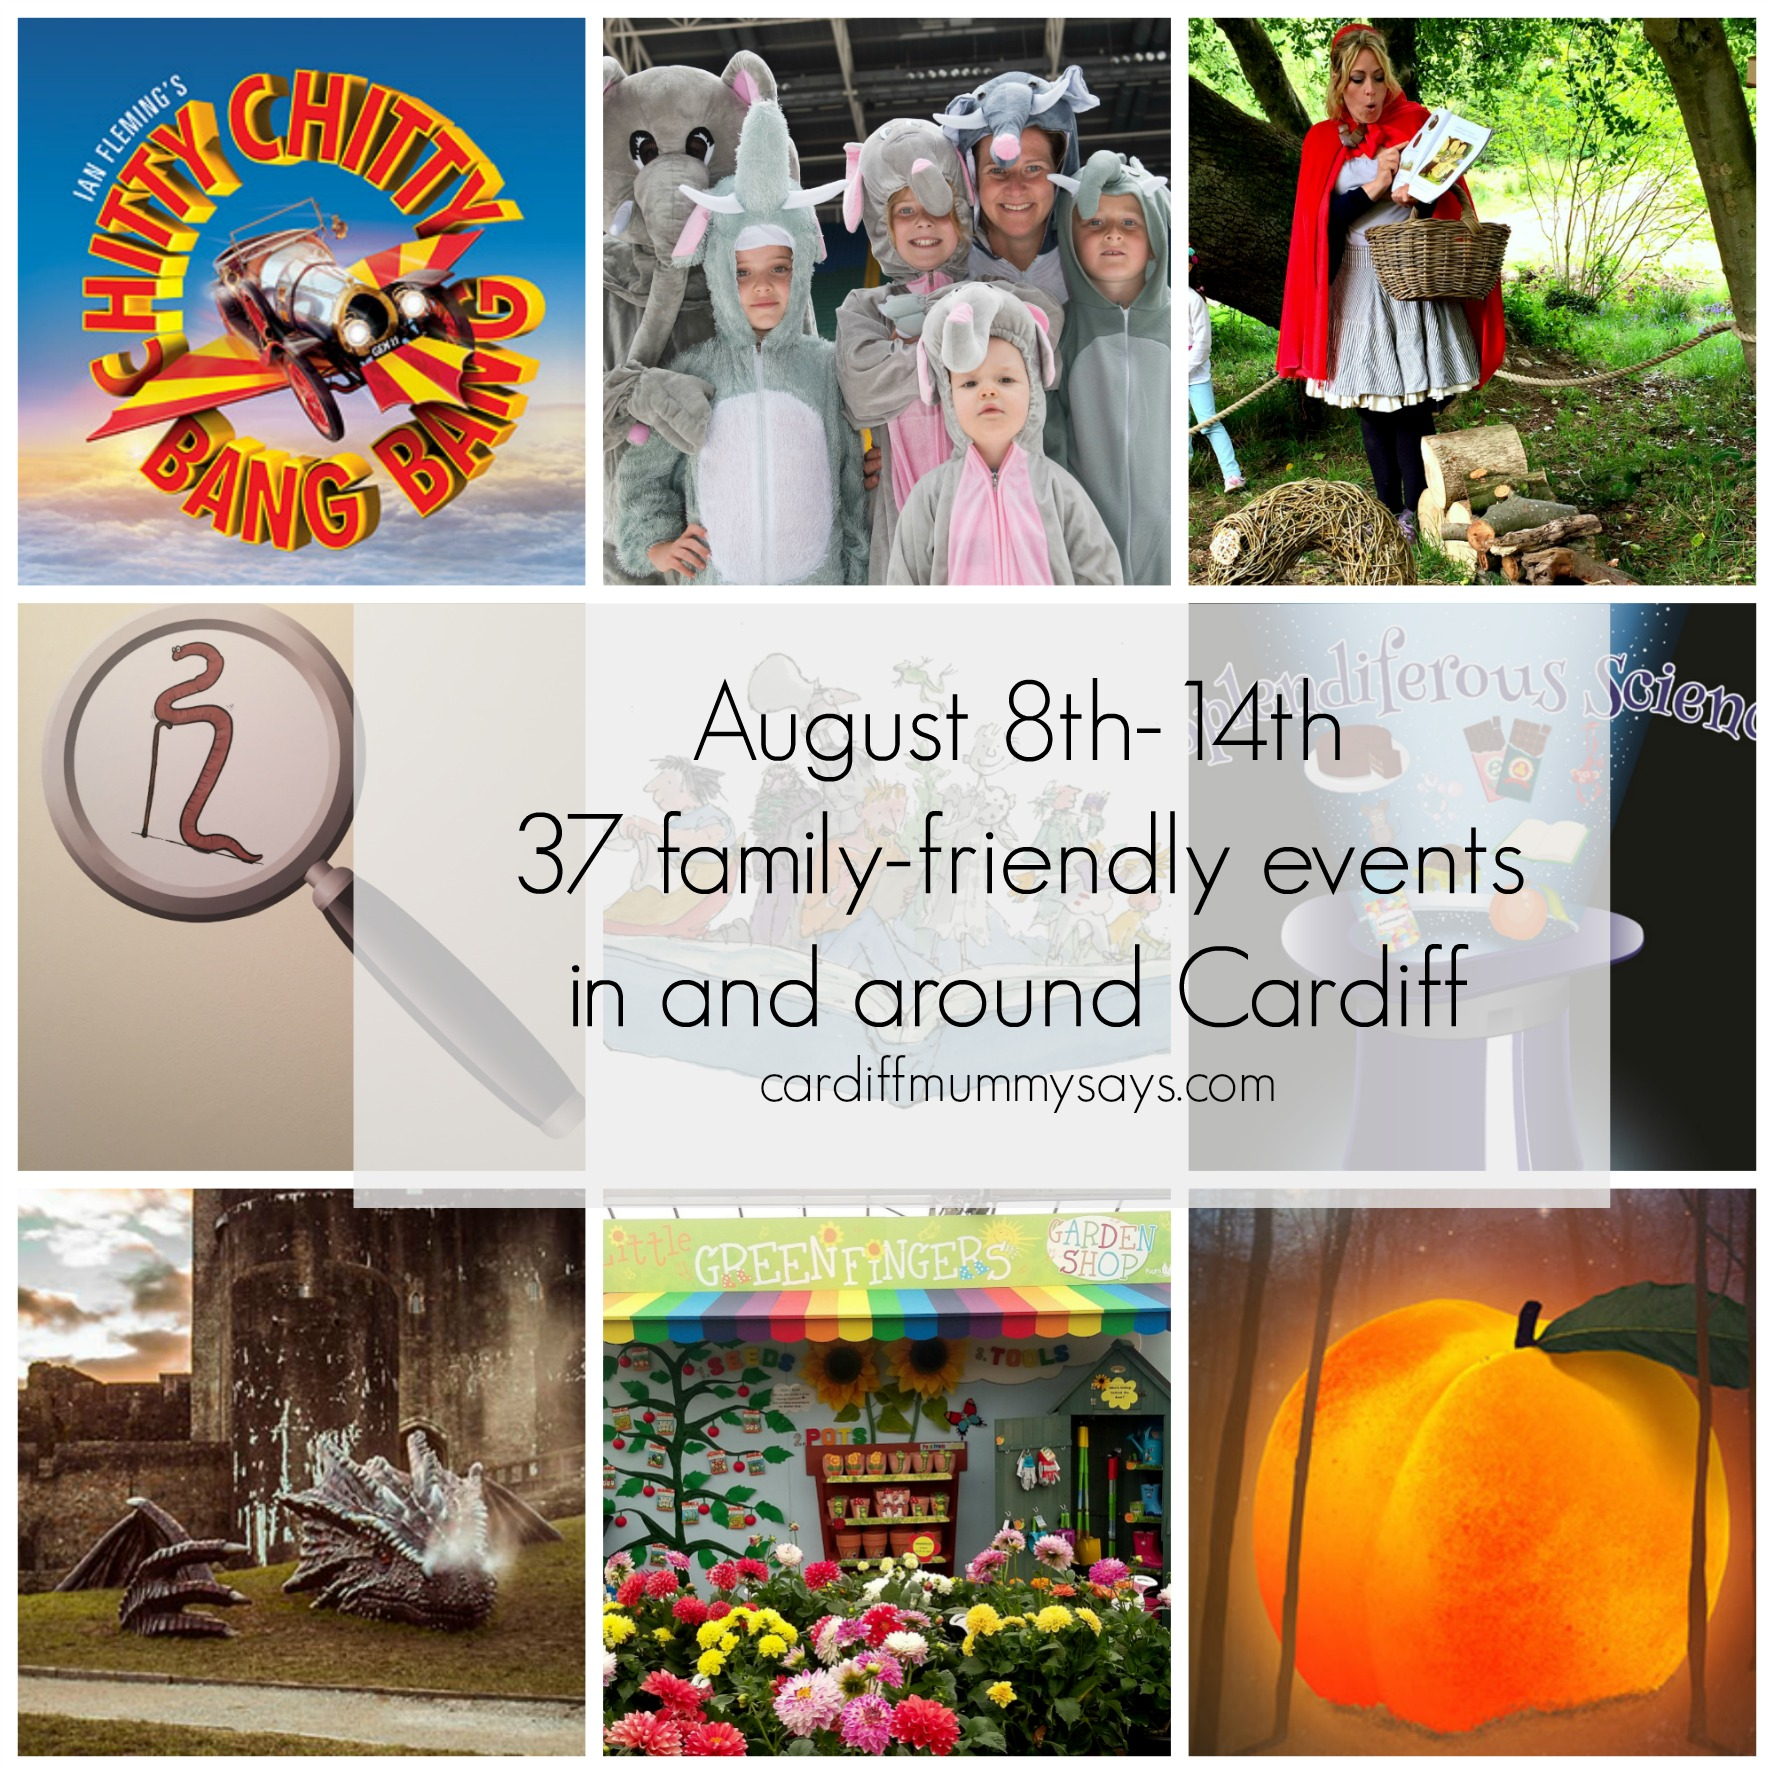 08 08 2016 Family Friendly Events collage with text